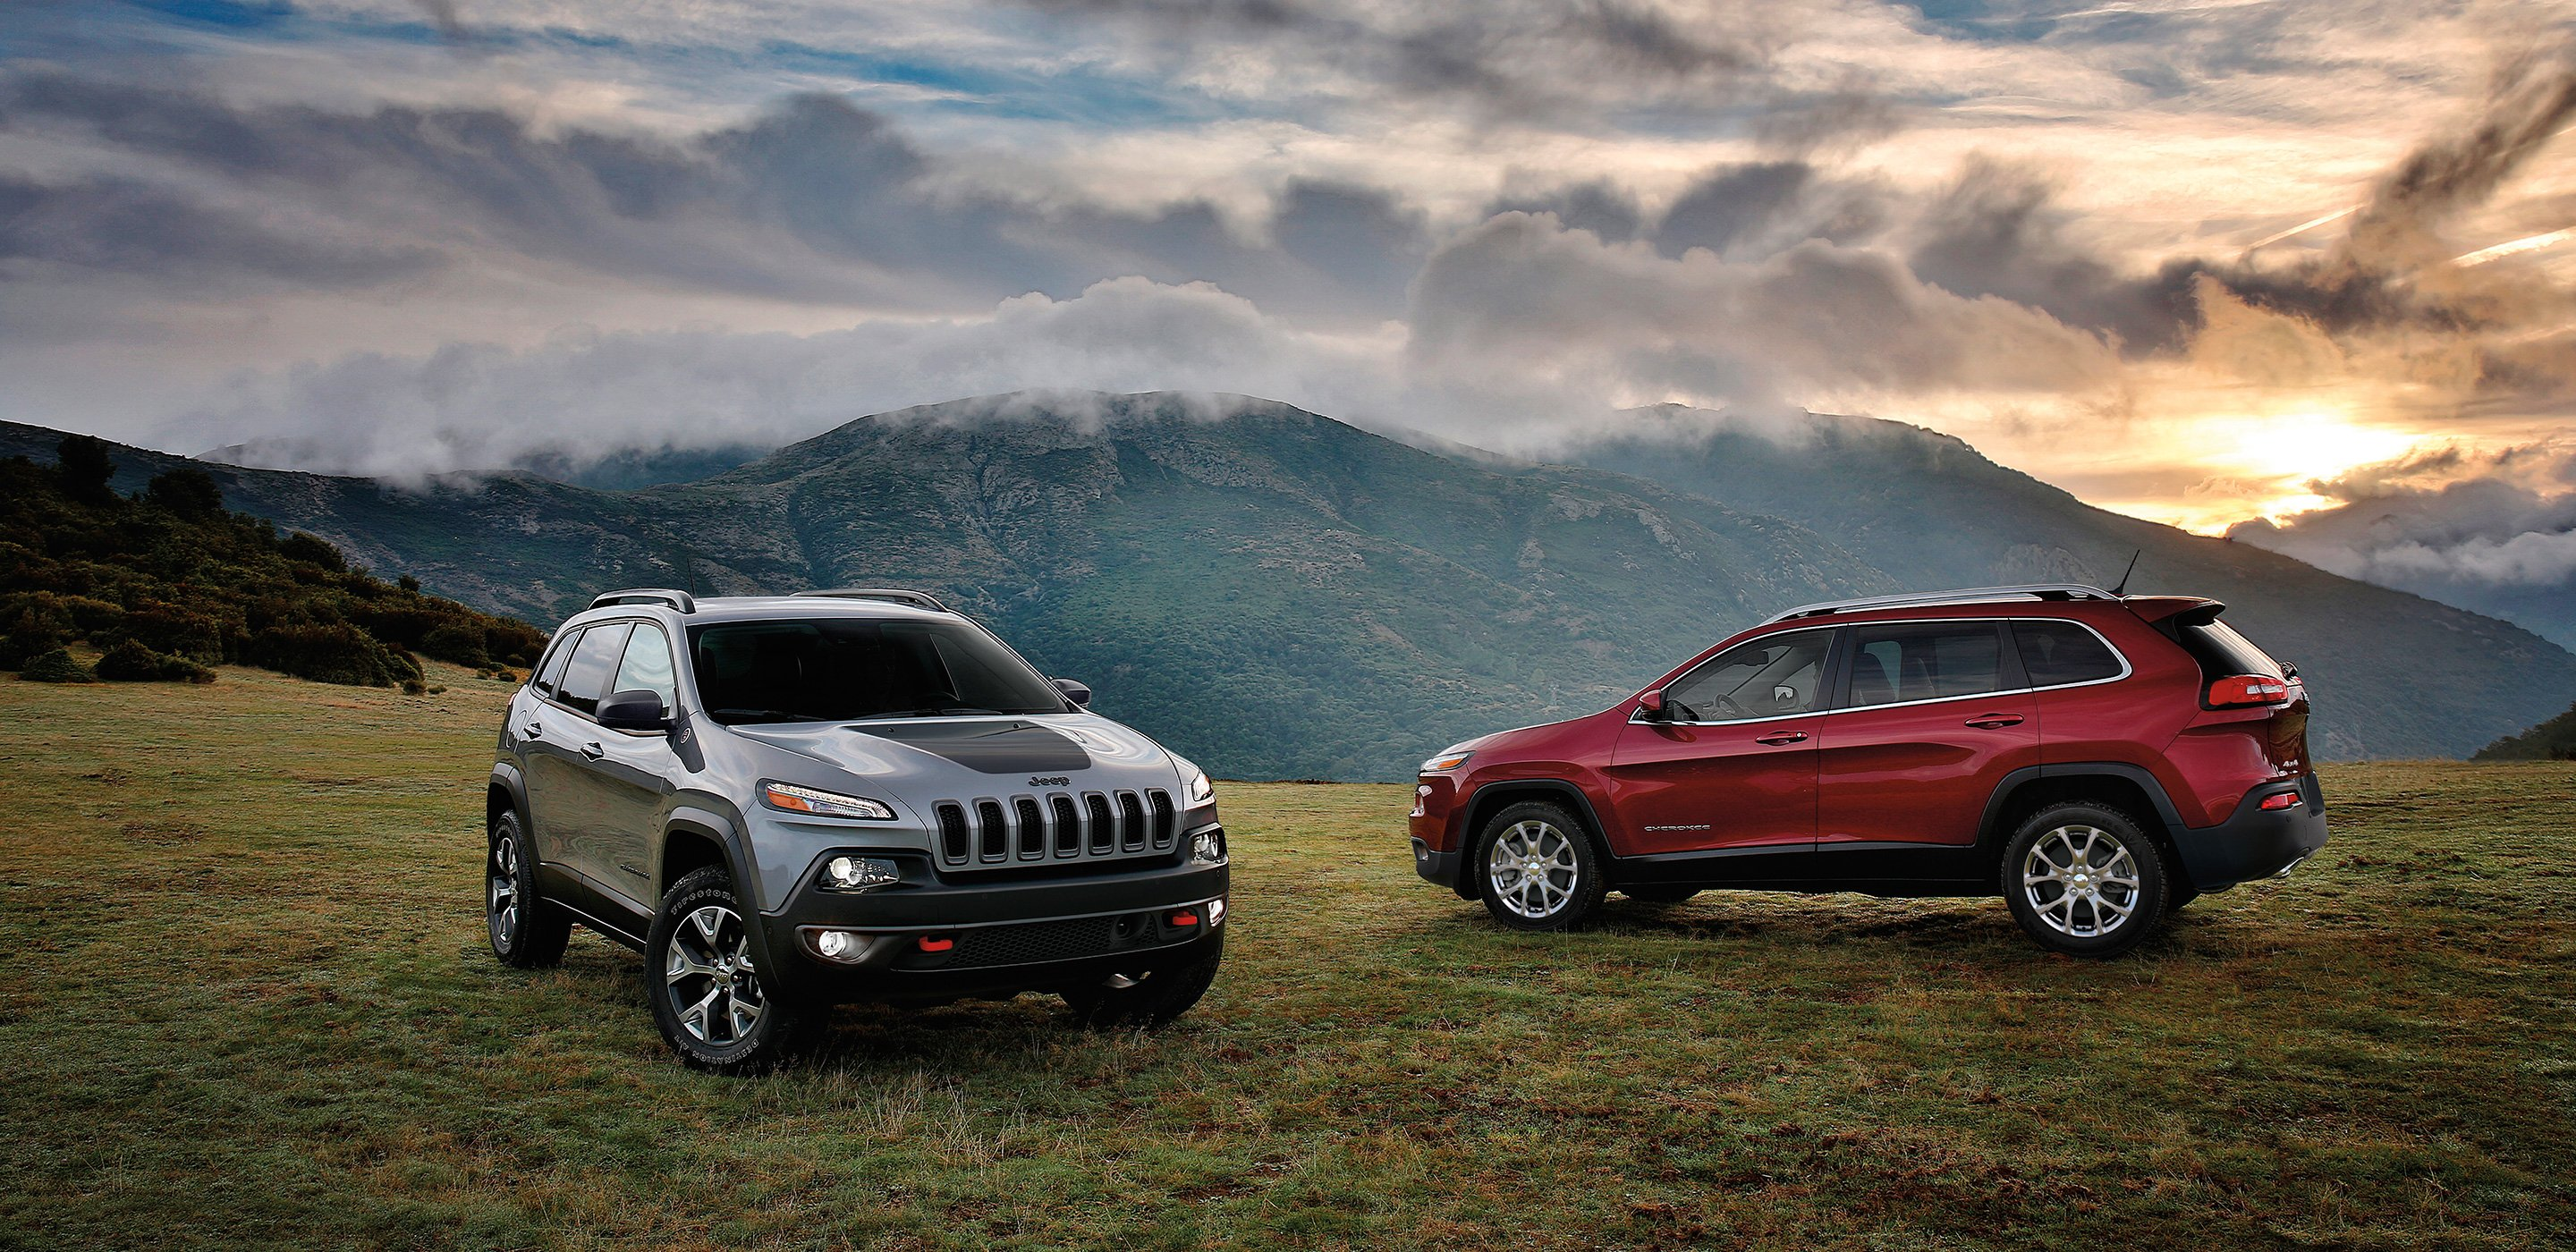 2019 Jeep Cherokee hills sun set uhd 4k wallpaper   Latest 2880x1400